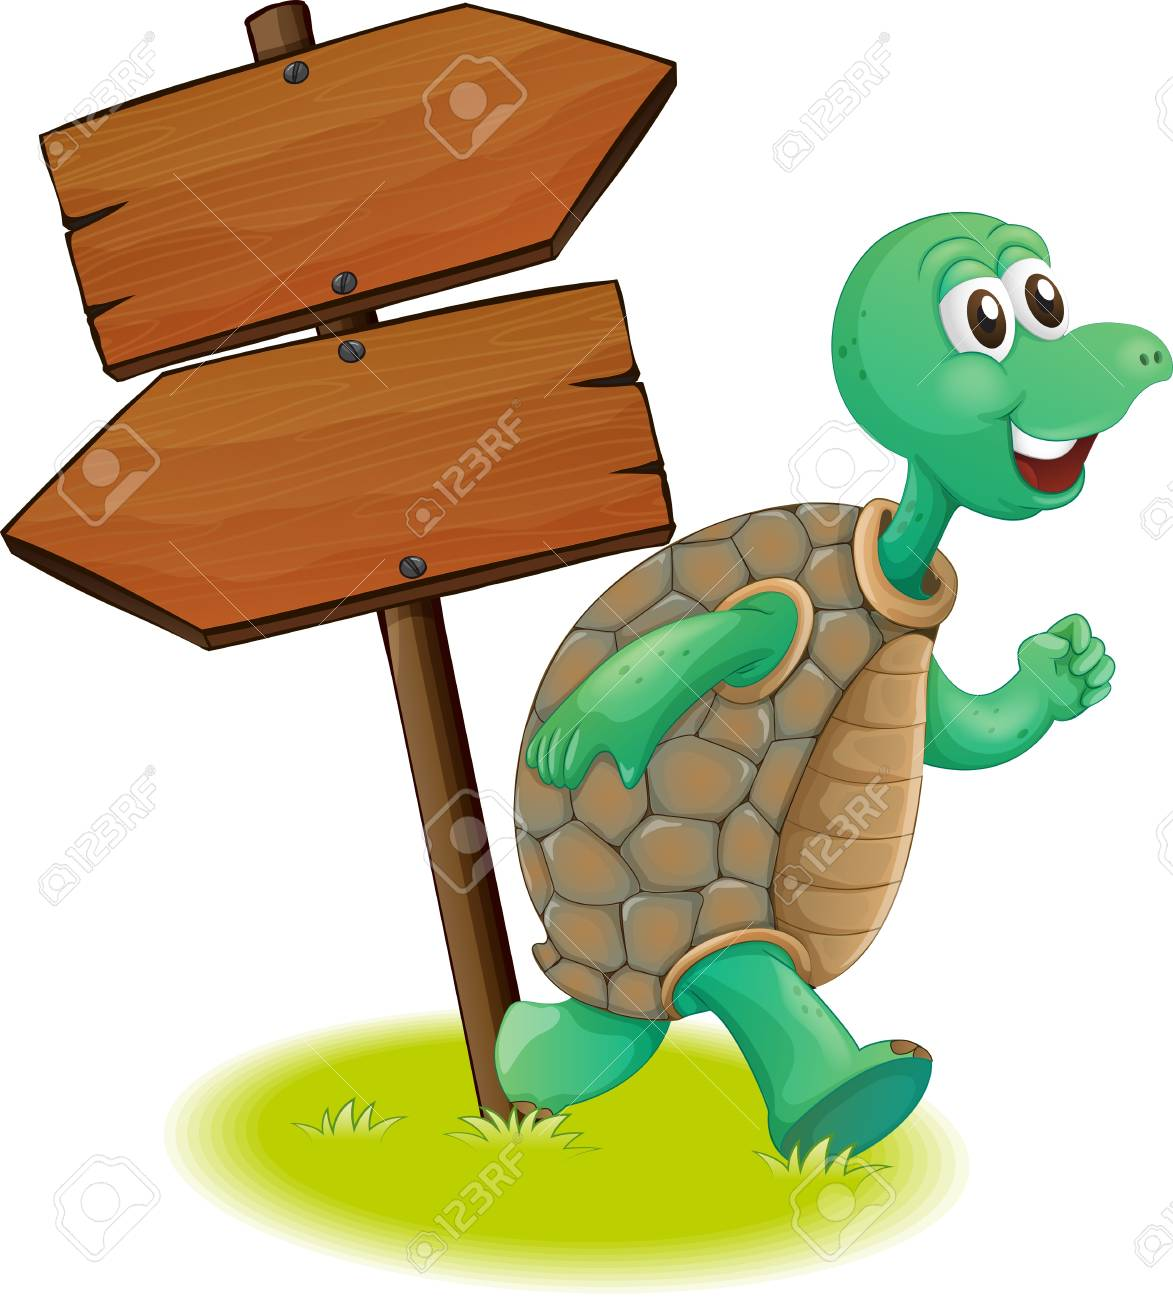 Illustration of a turtle beside the wooden arrowboards on a white background Stock Vector - 19873583